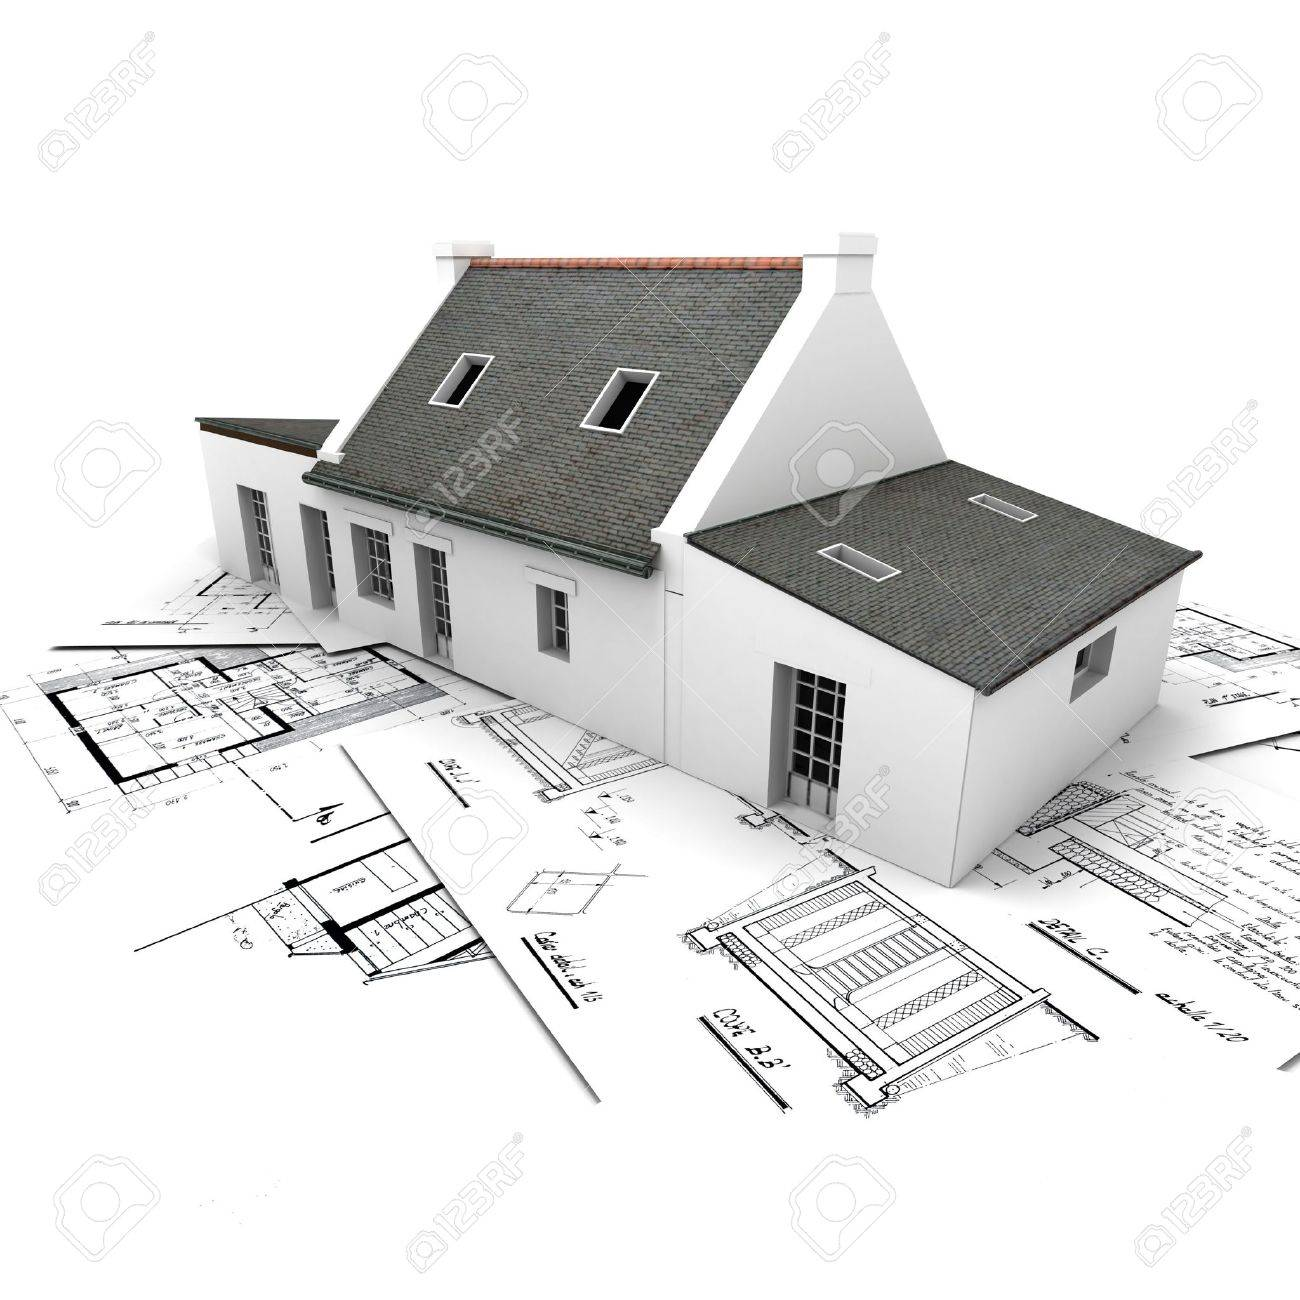 Architecture Blueprints 3d 3d rendering of a house on top of architecture blueprints stock